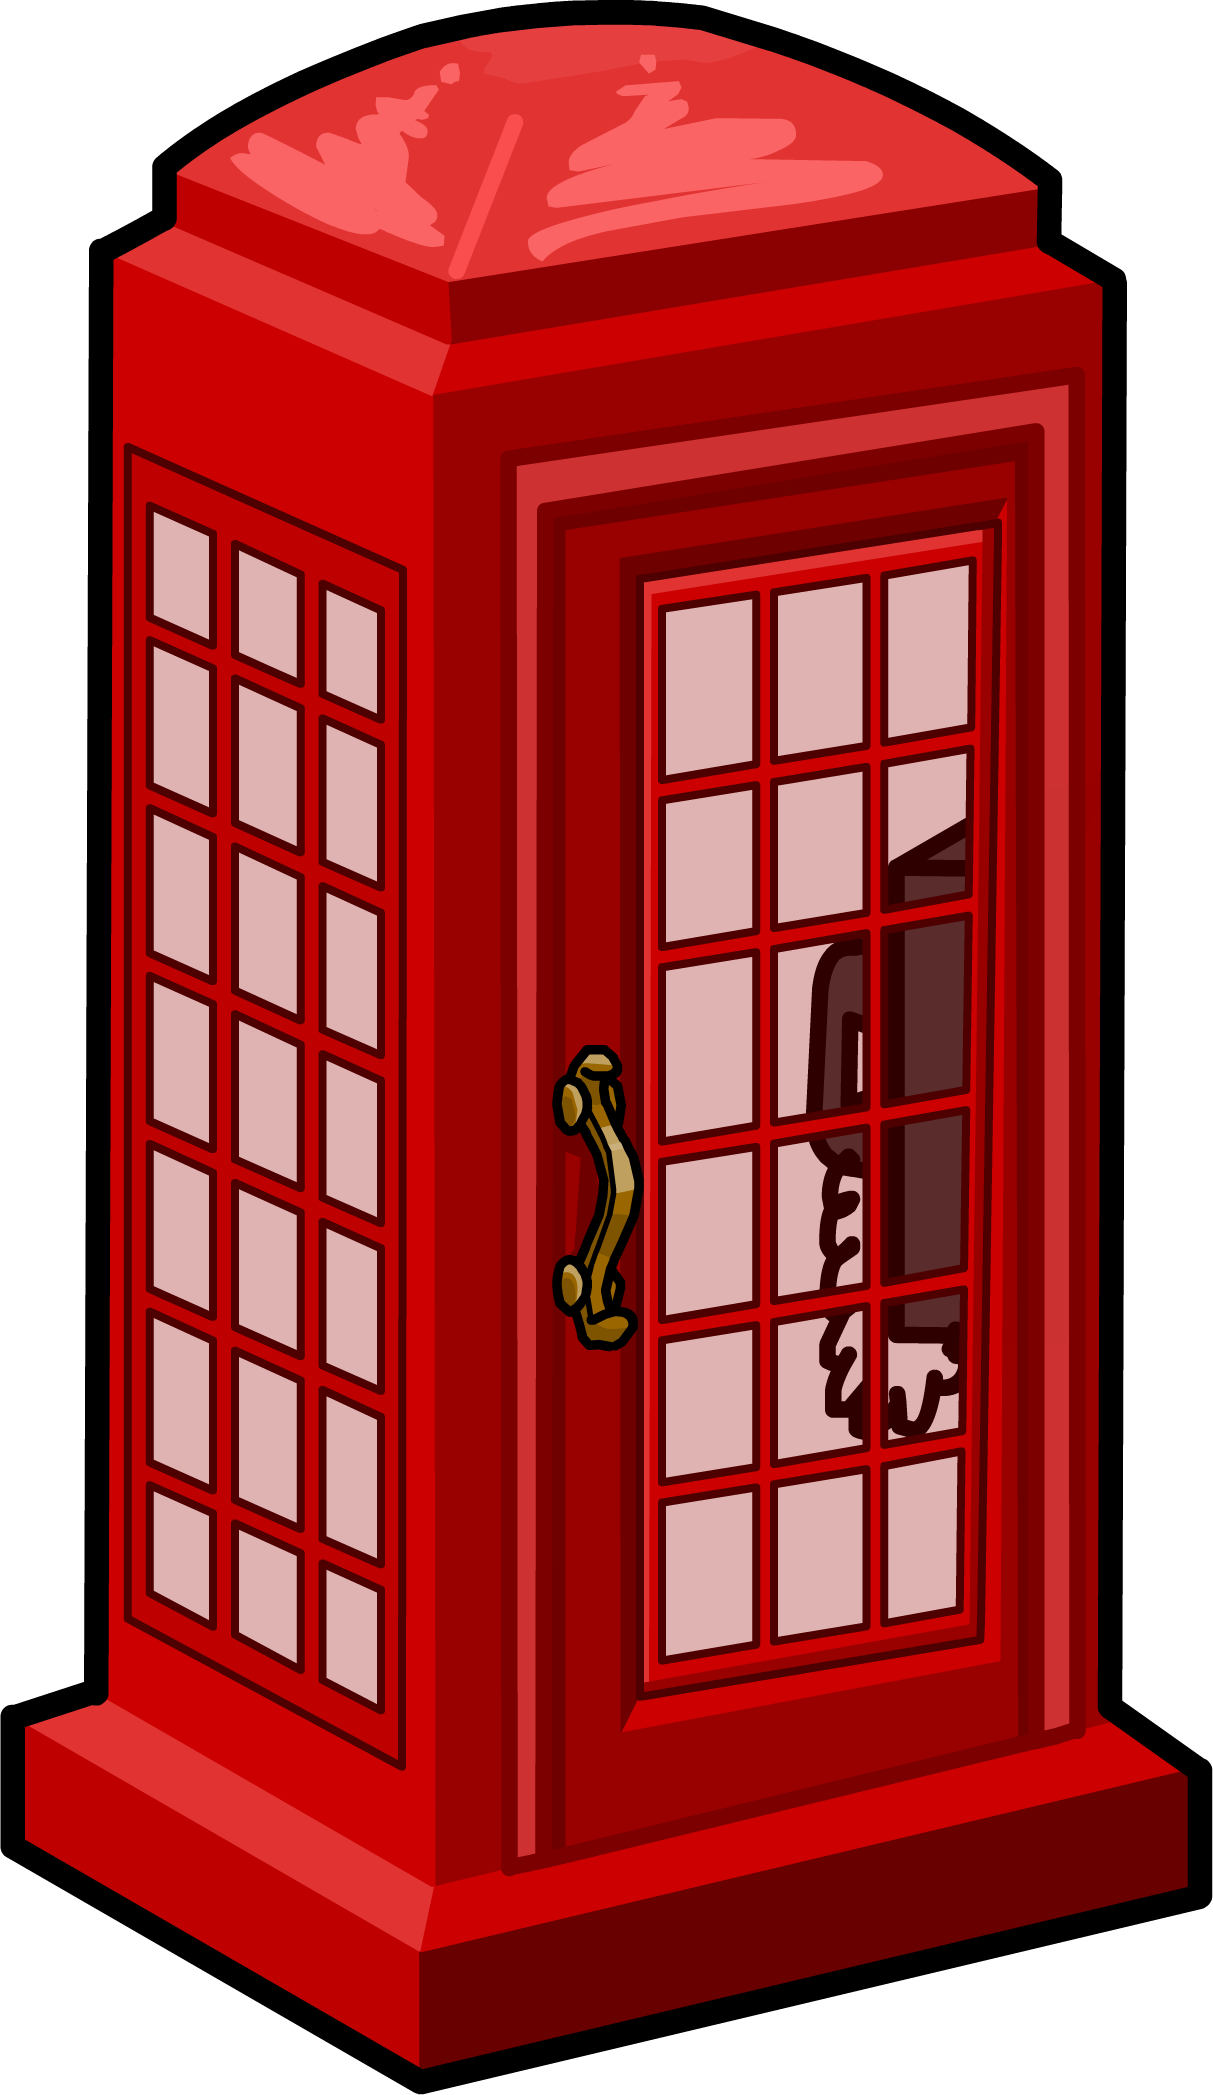 Phone Booth PNG Image